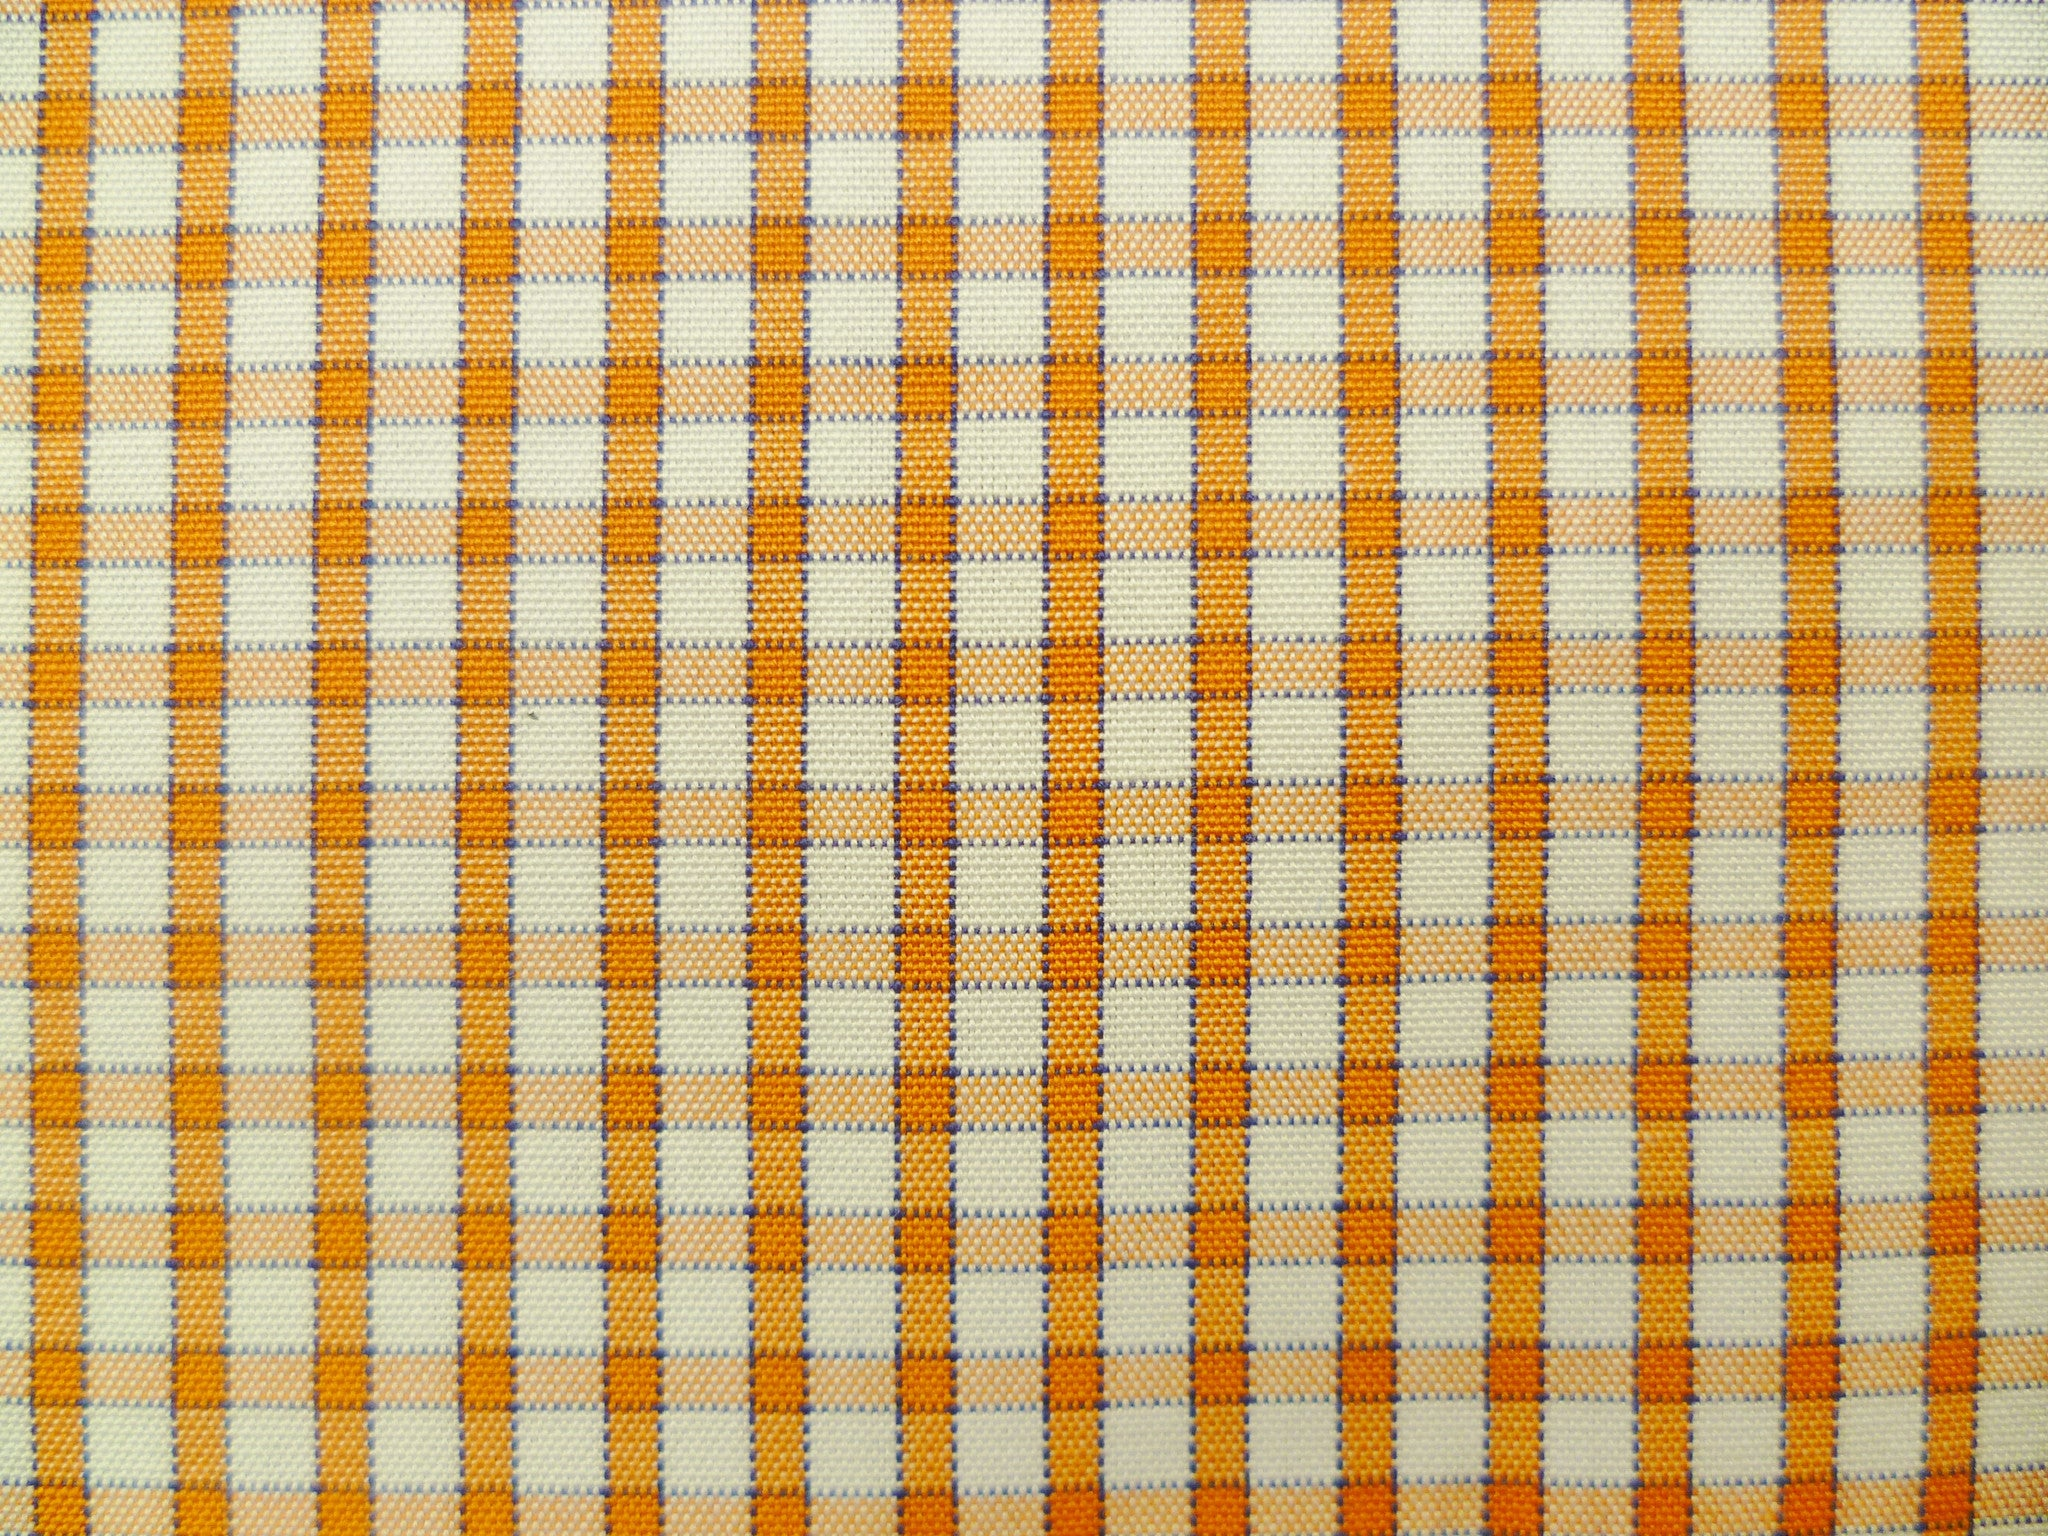 Tangerine-Violet and White Gingham Checked Cotton